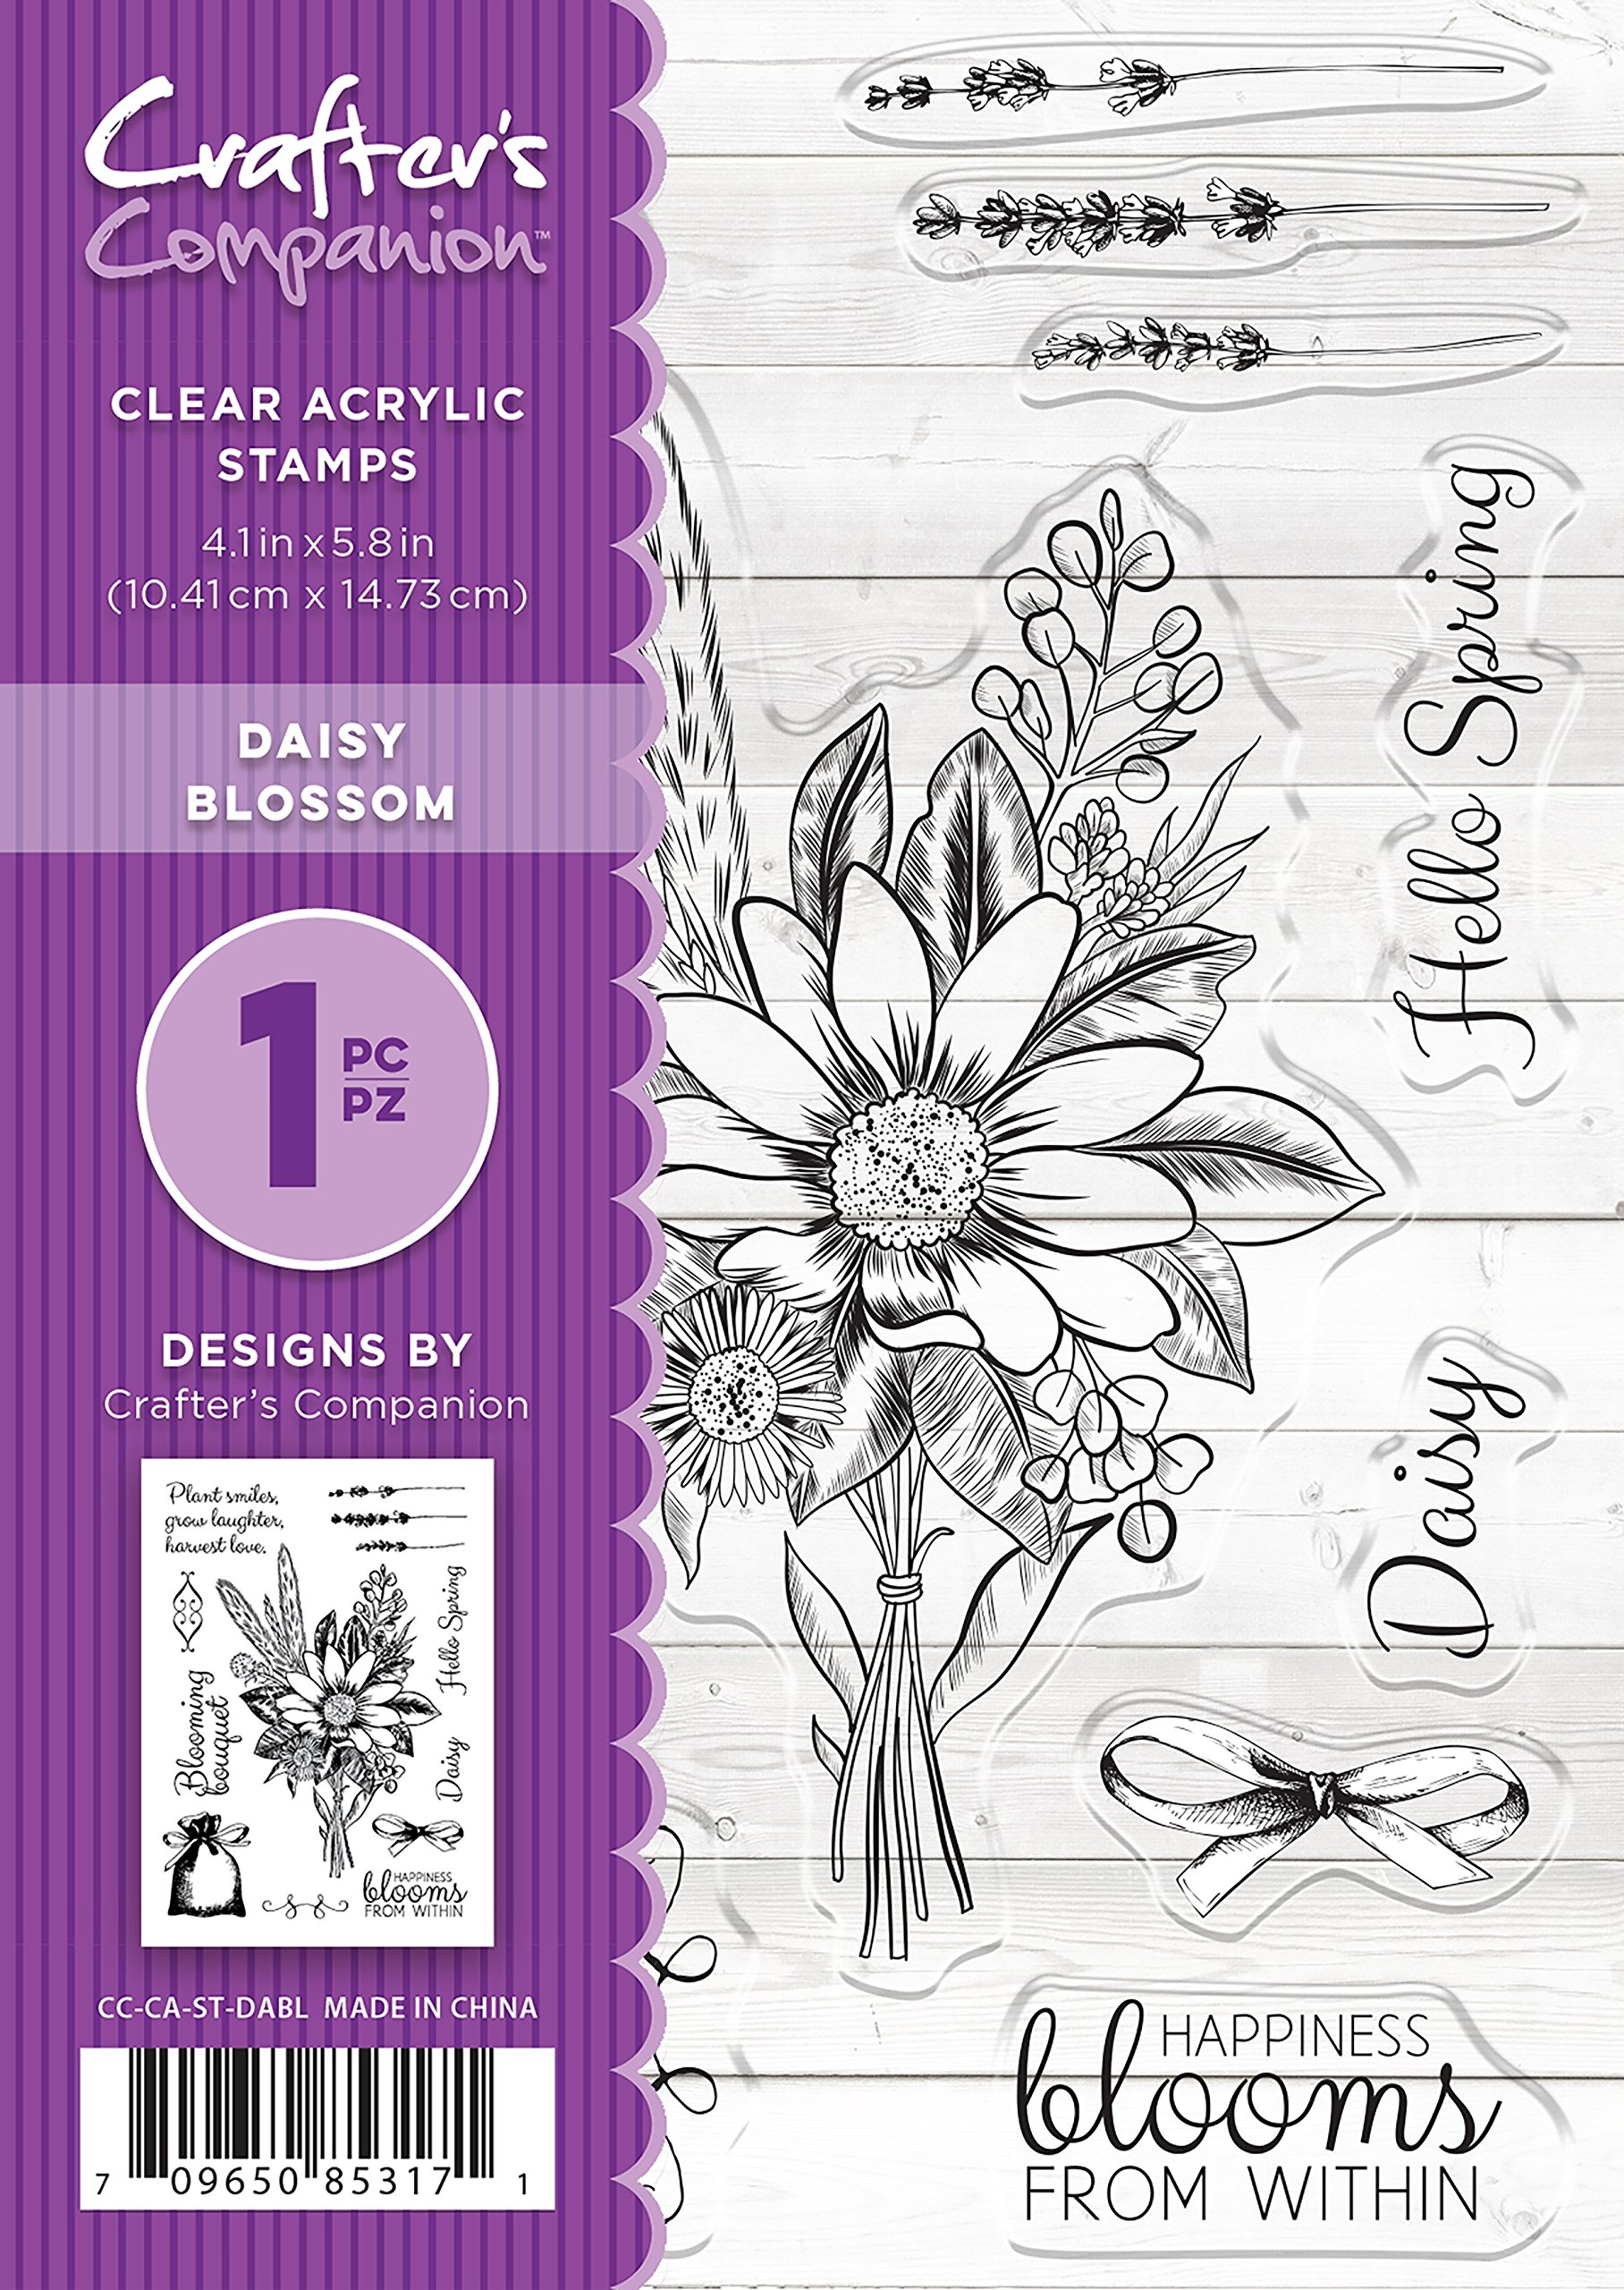 Crafter's Companion CC-CA-ST-DABL A6 Daisy Blossom Clear Stamp